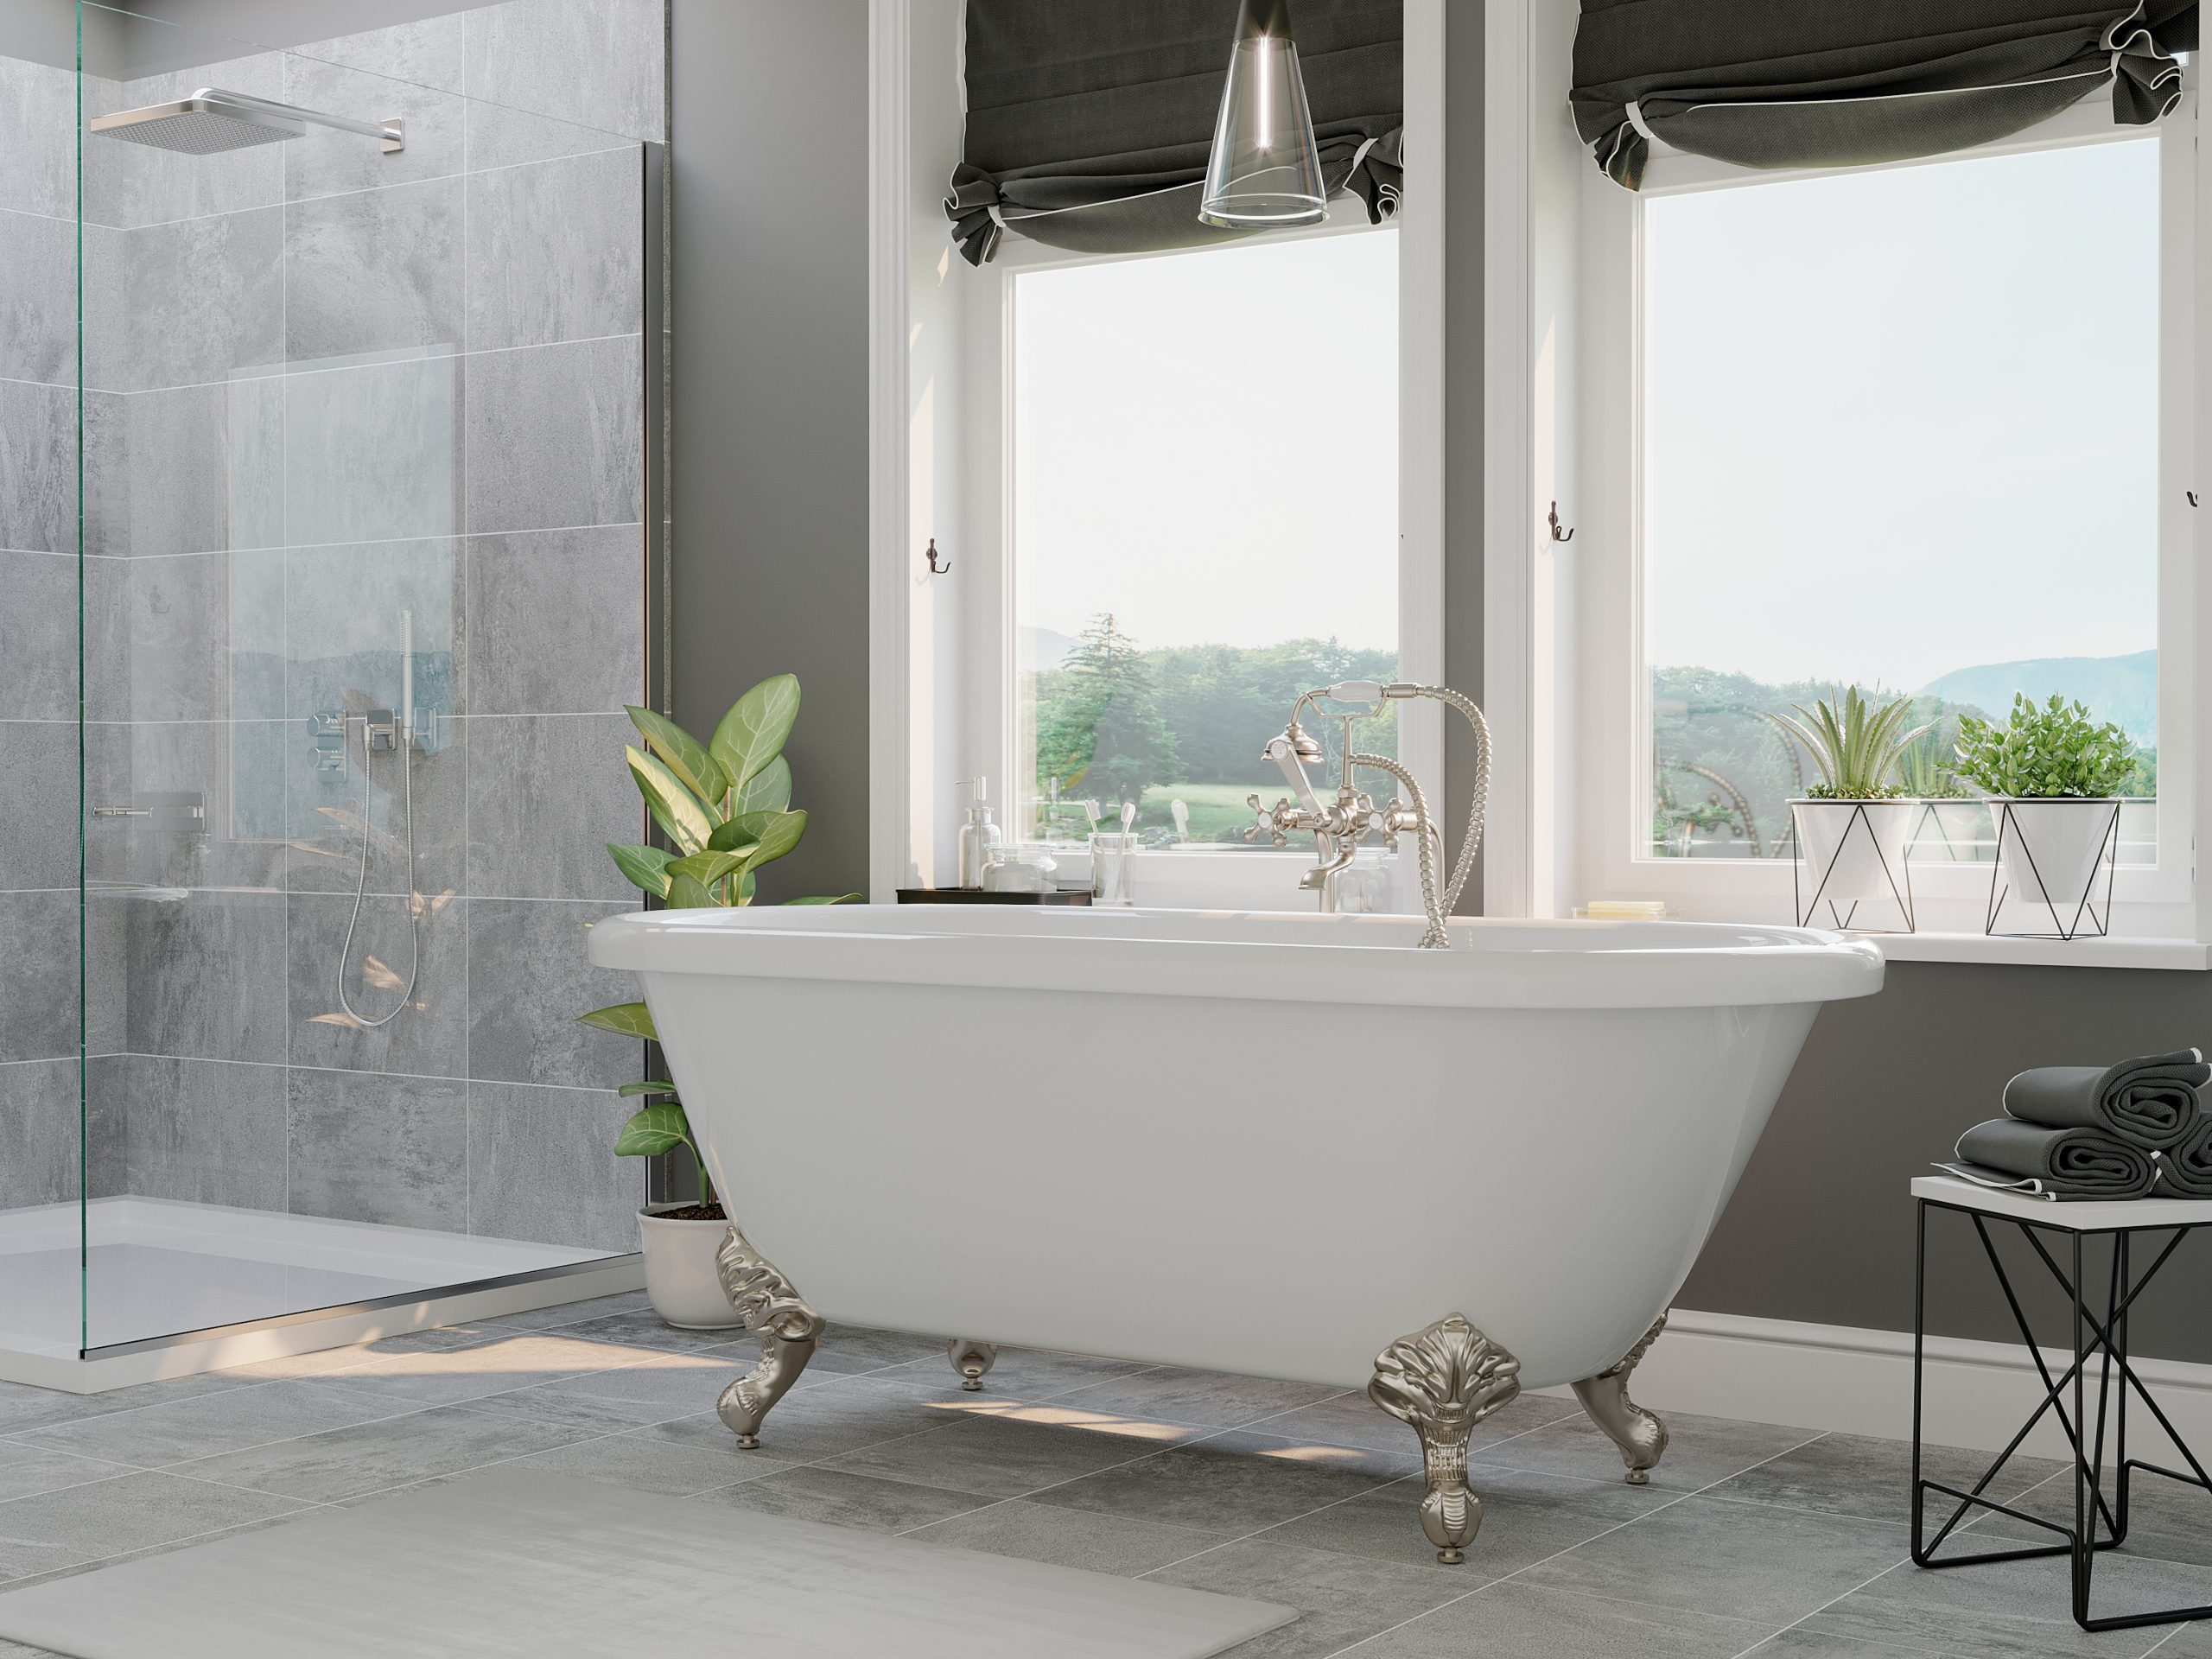 acrylic double ended tub, clawfoot tub,